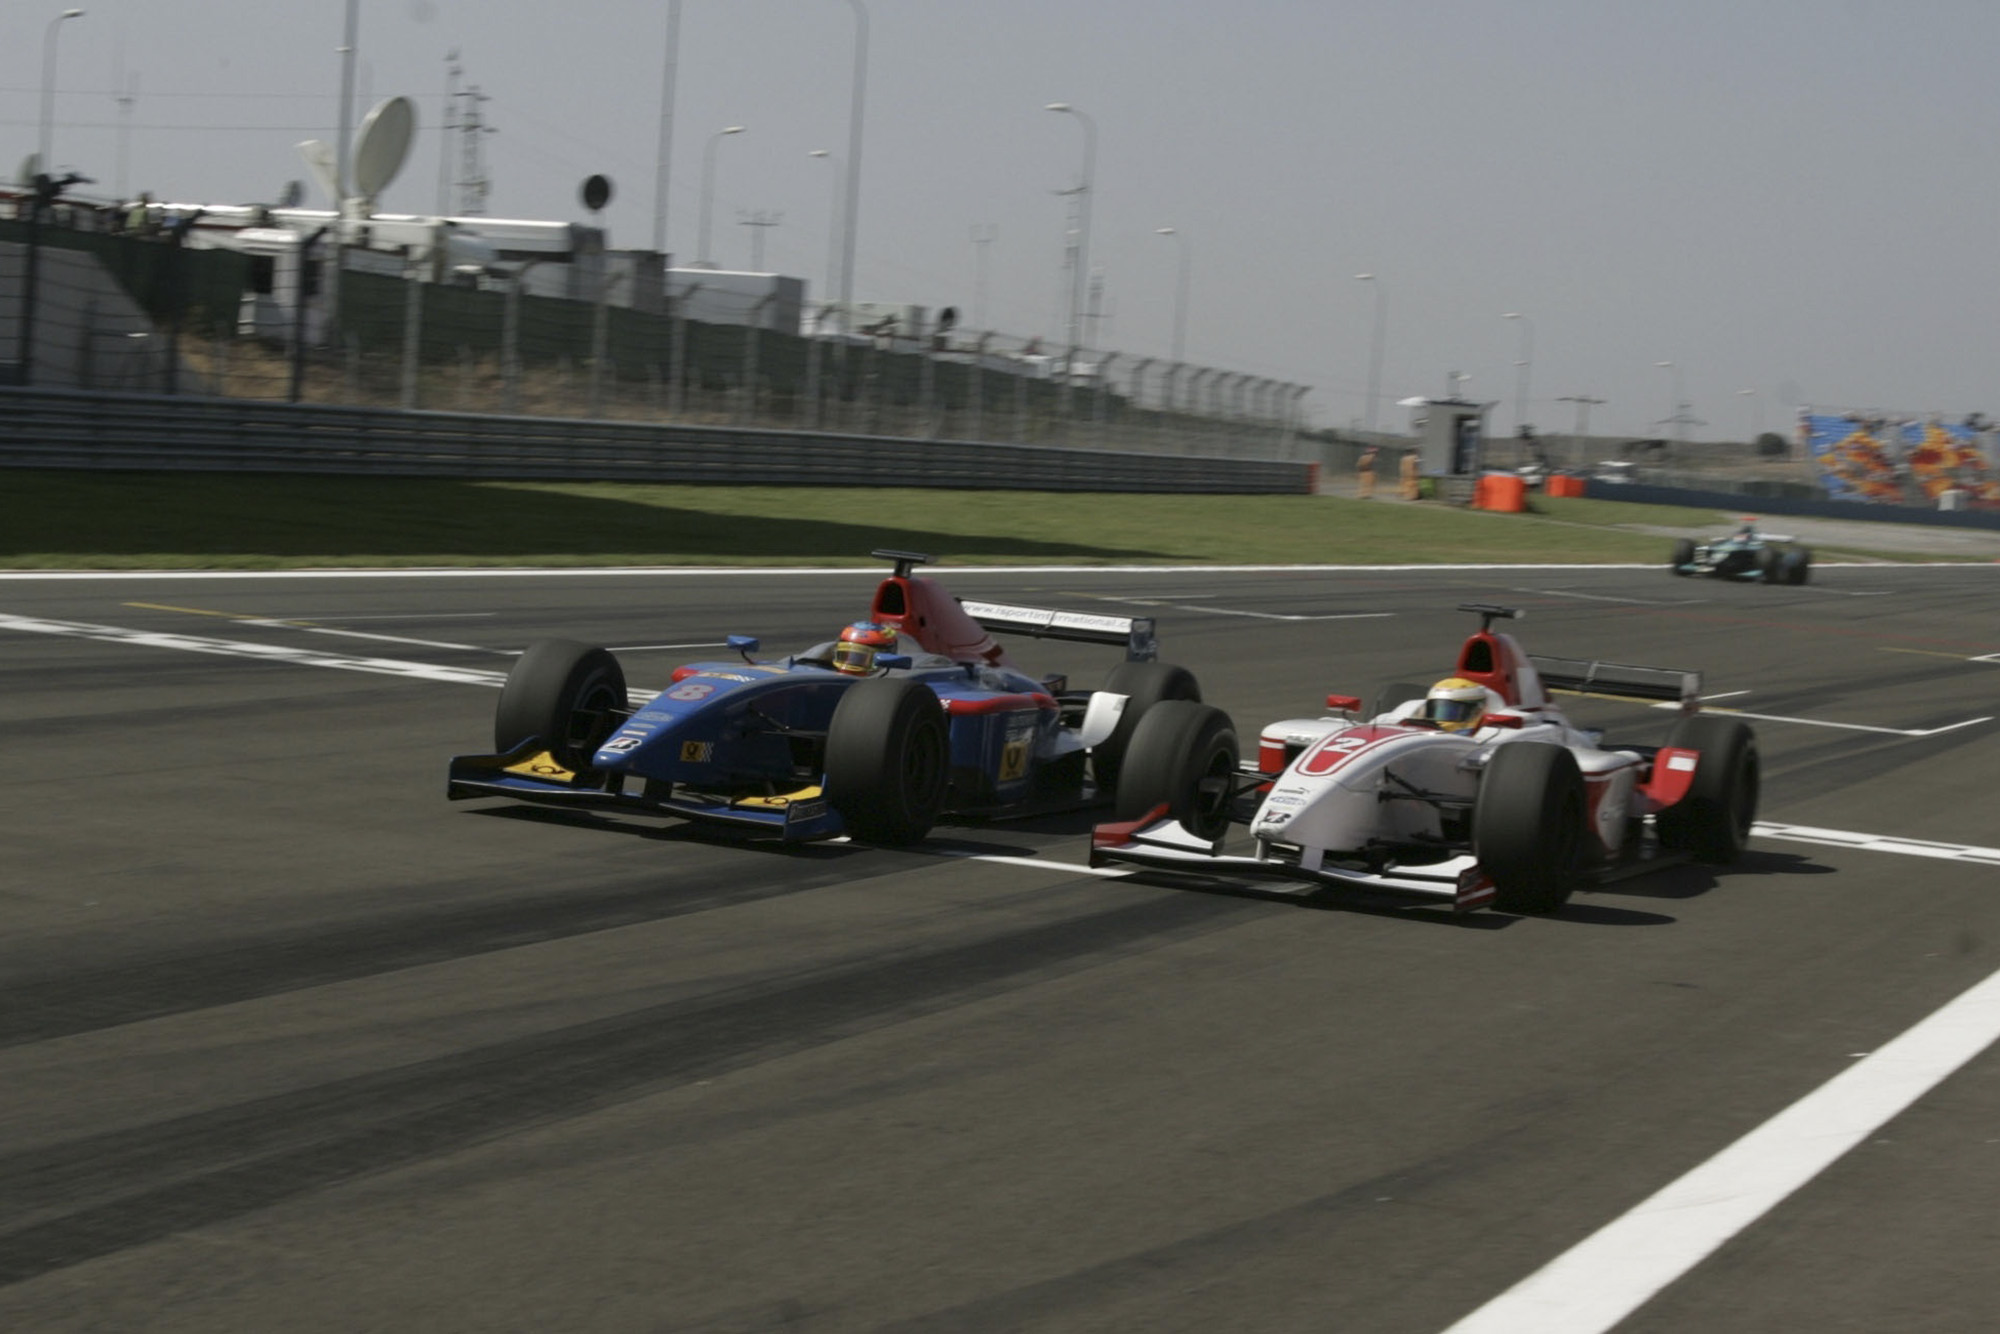 Lewis Hamilton and Timo Glock battle side by side at the 2006 GP2 race in Istanbul